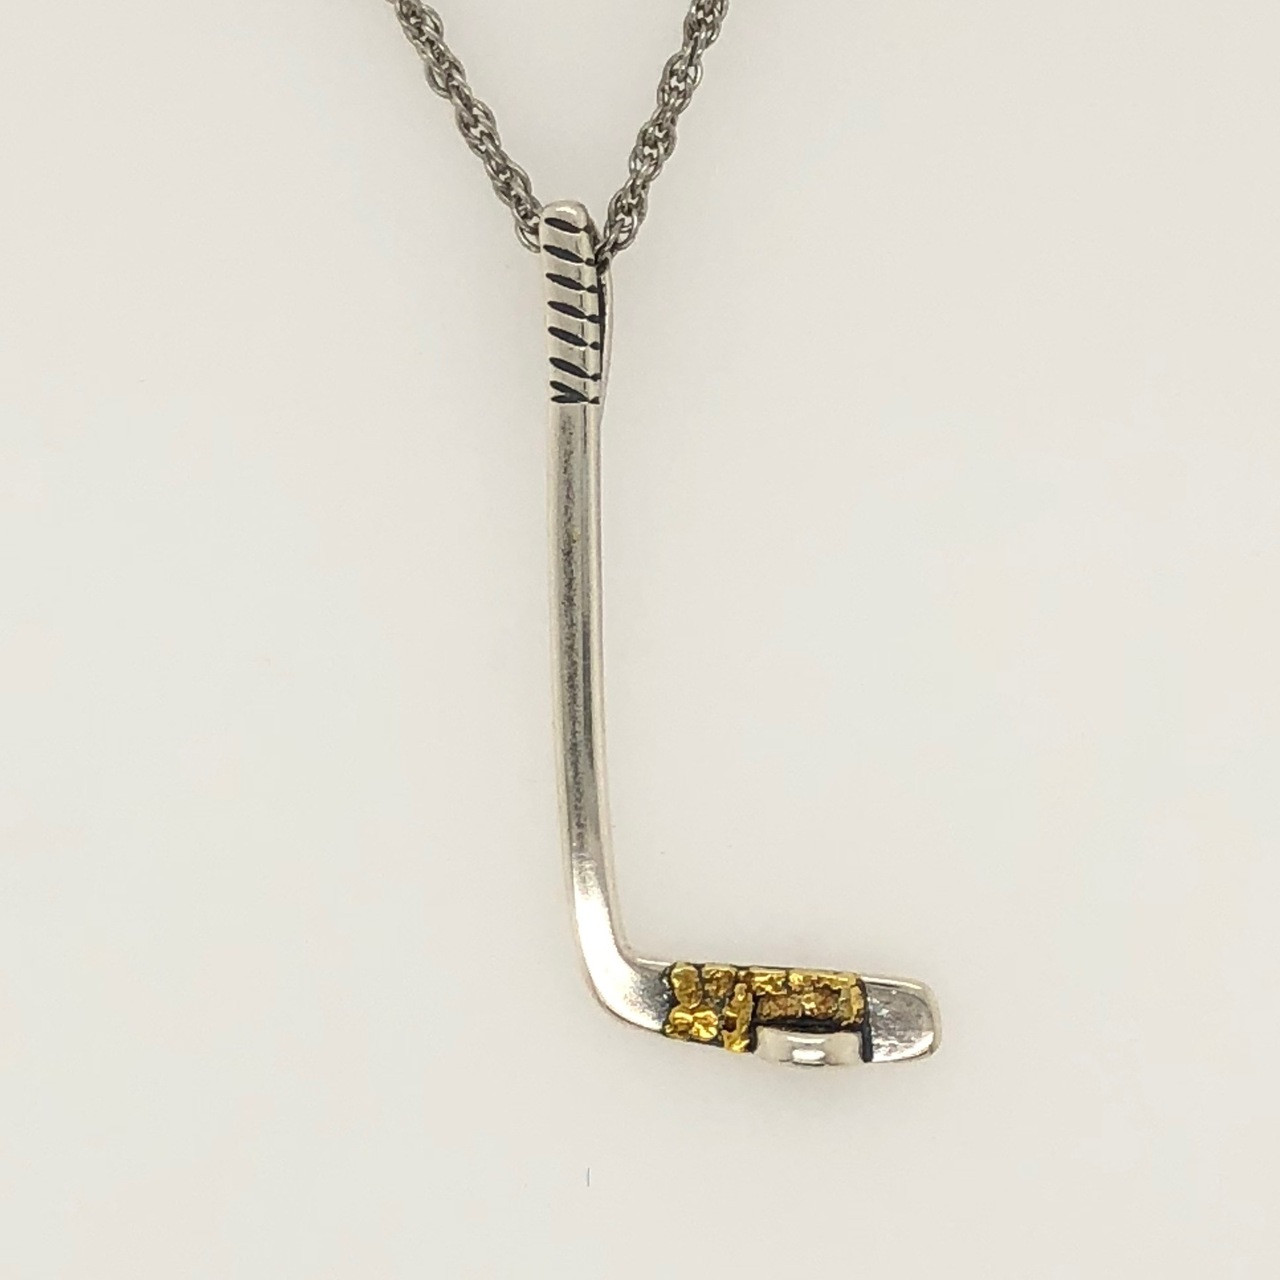 14k White Gold Hockey Stick and Puck Sports Pendant Necklace